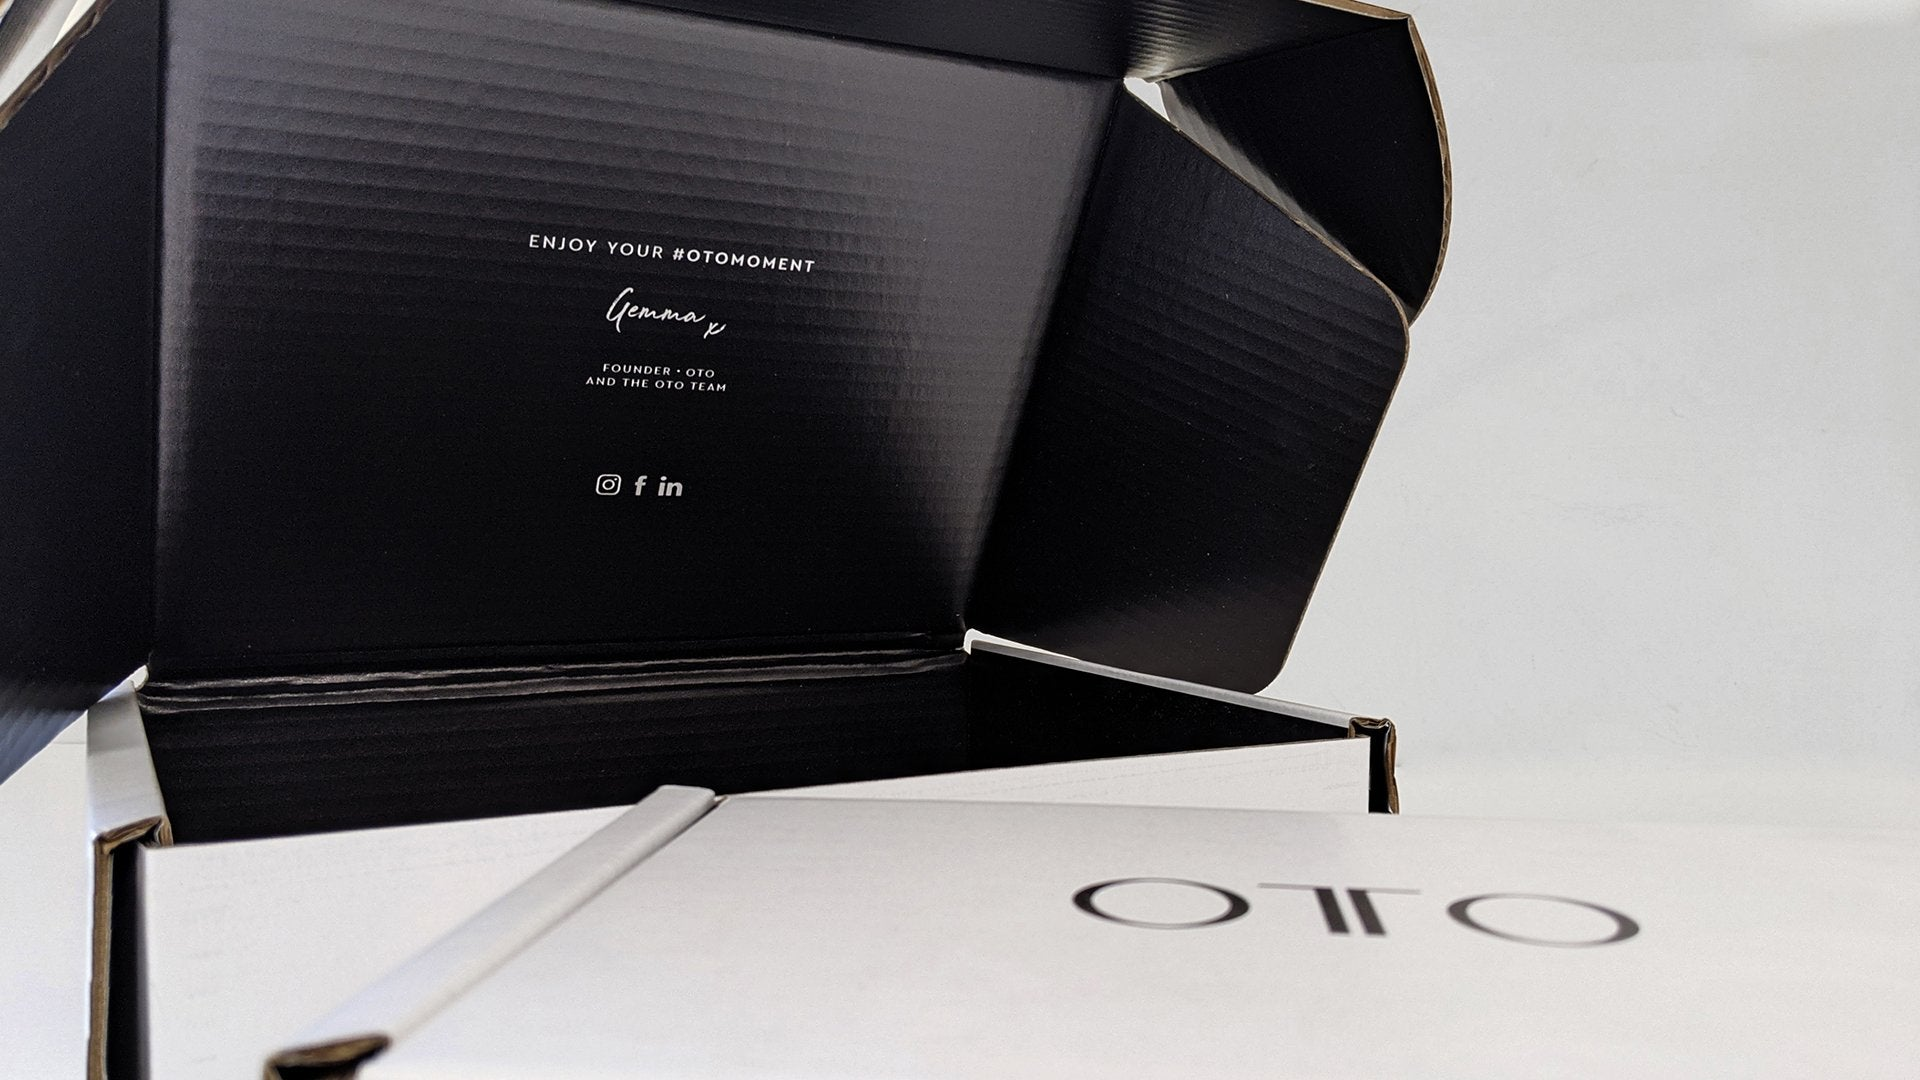 Building customer loyalty with a great unboxing experience